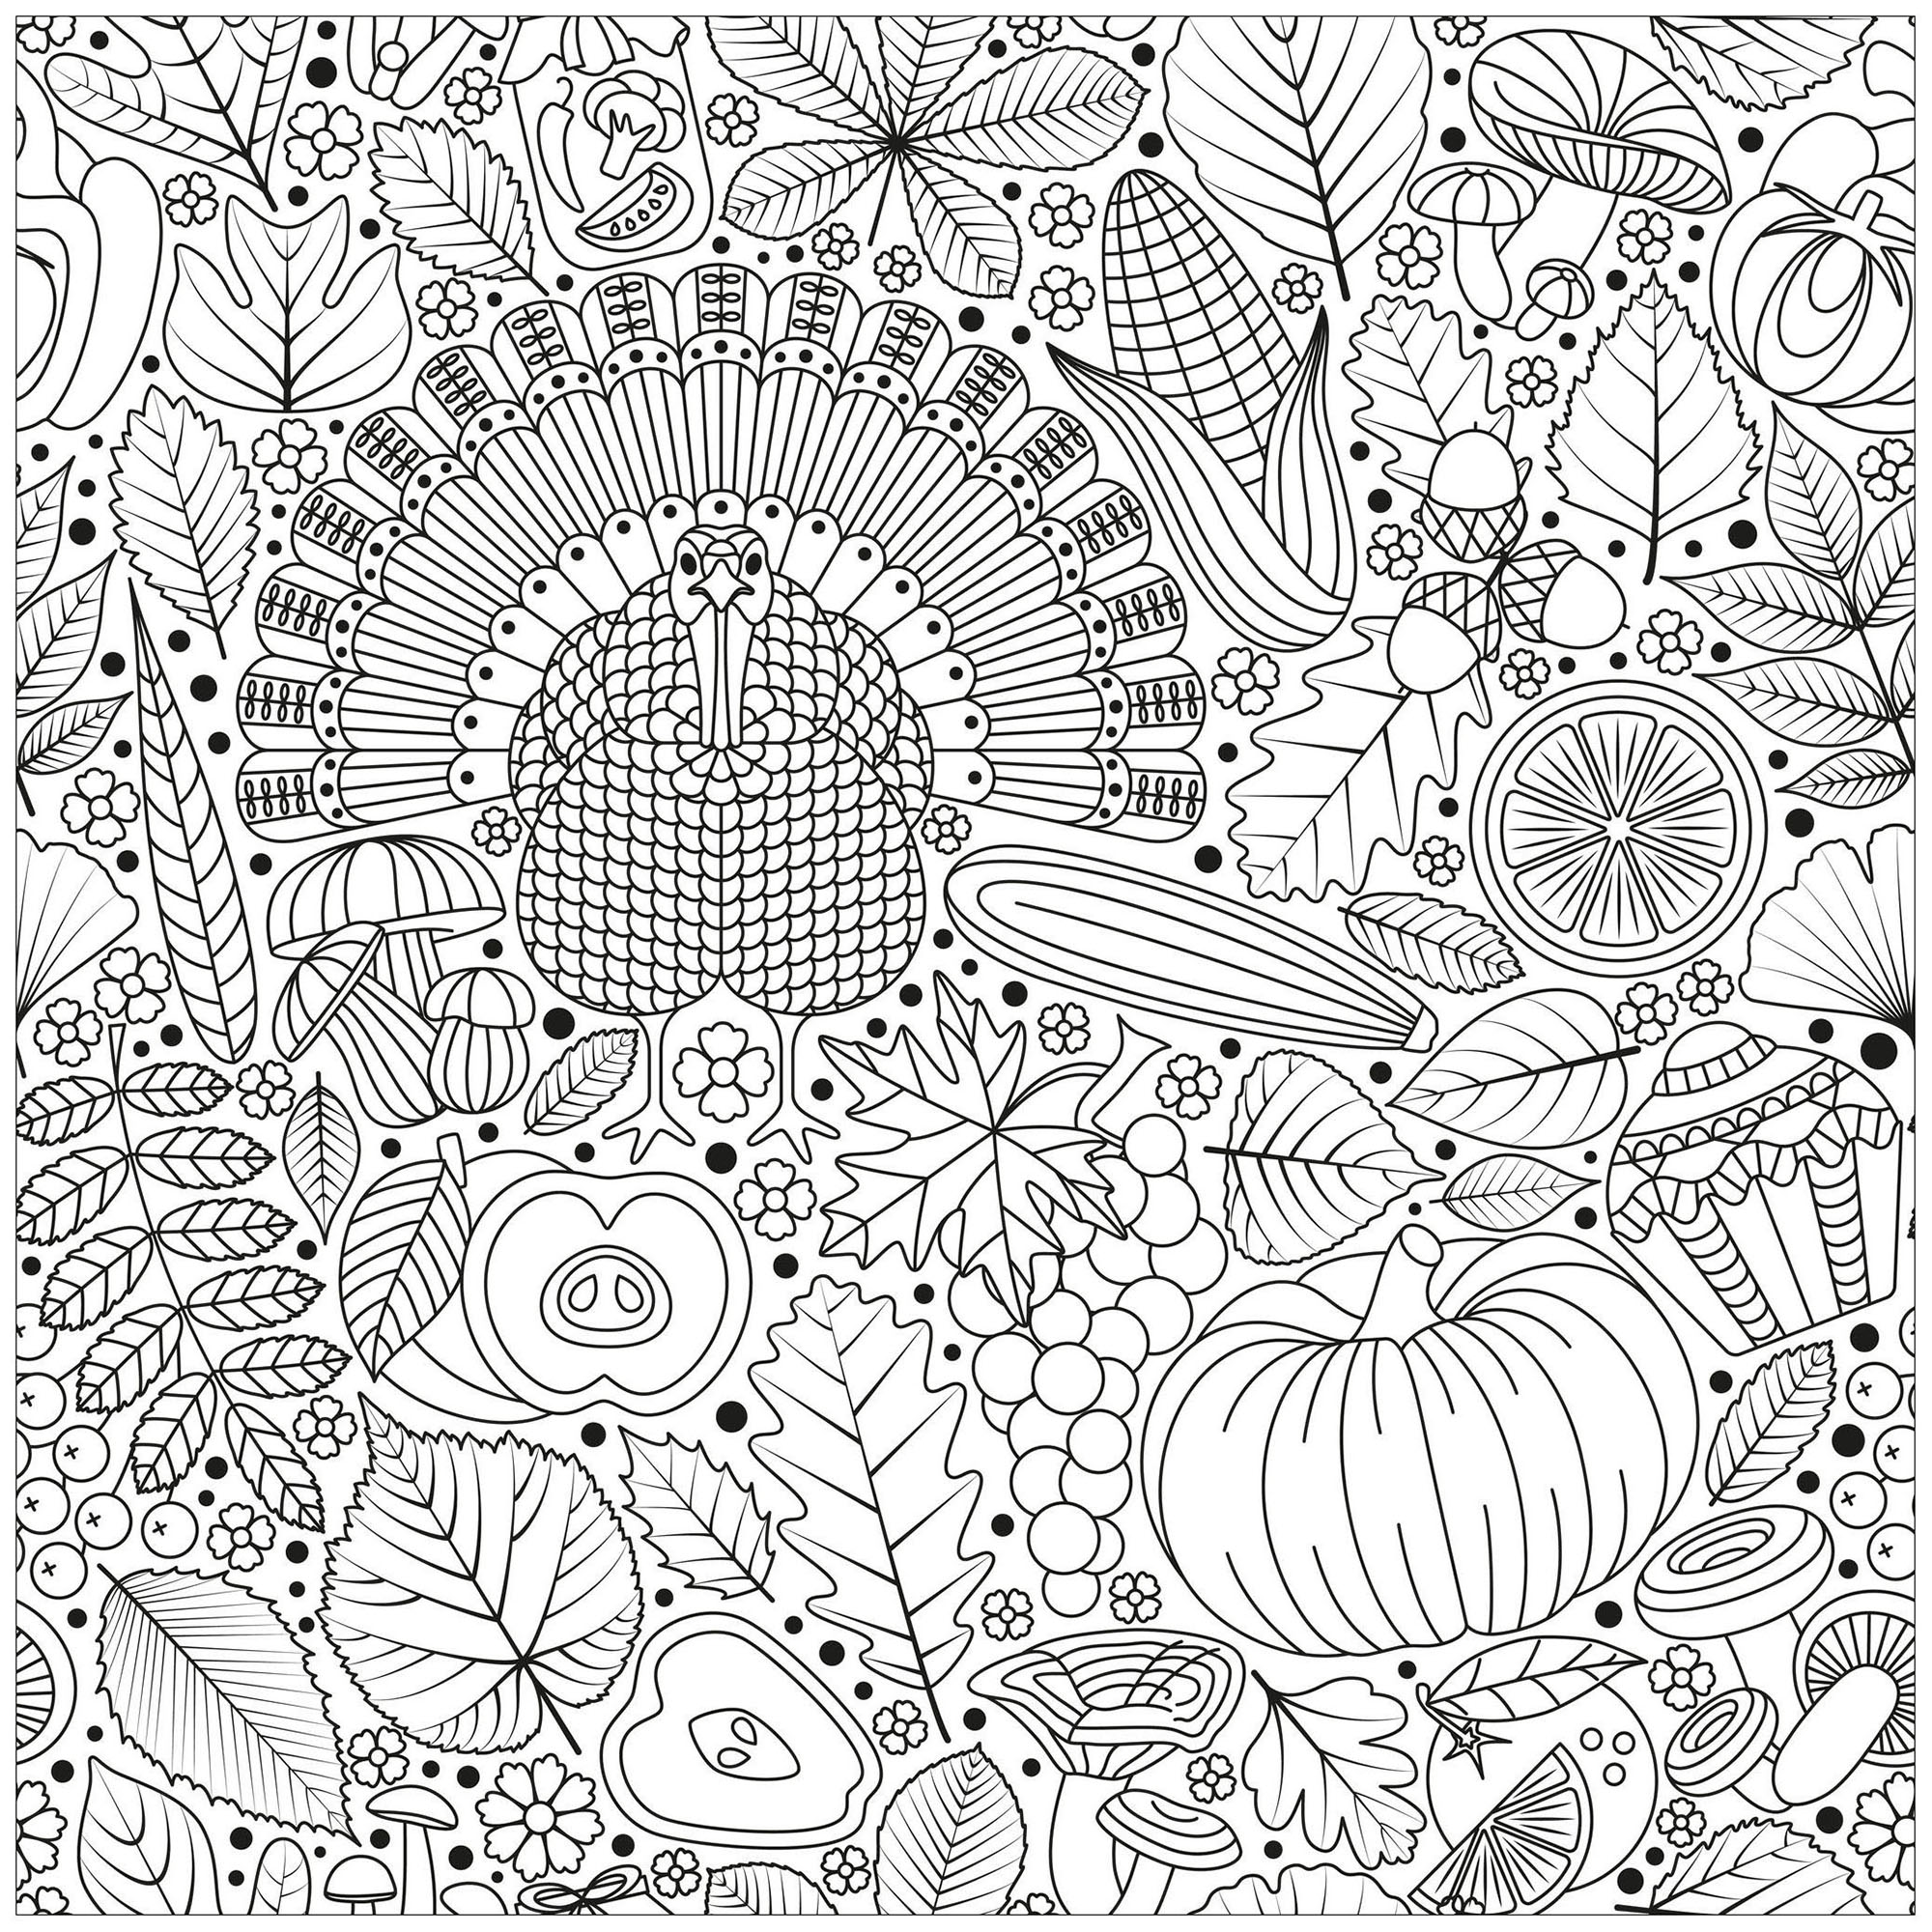 Free Thanksgiving coloring page to print and color, for kids